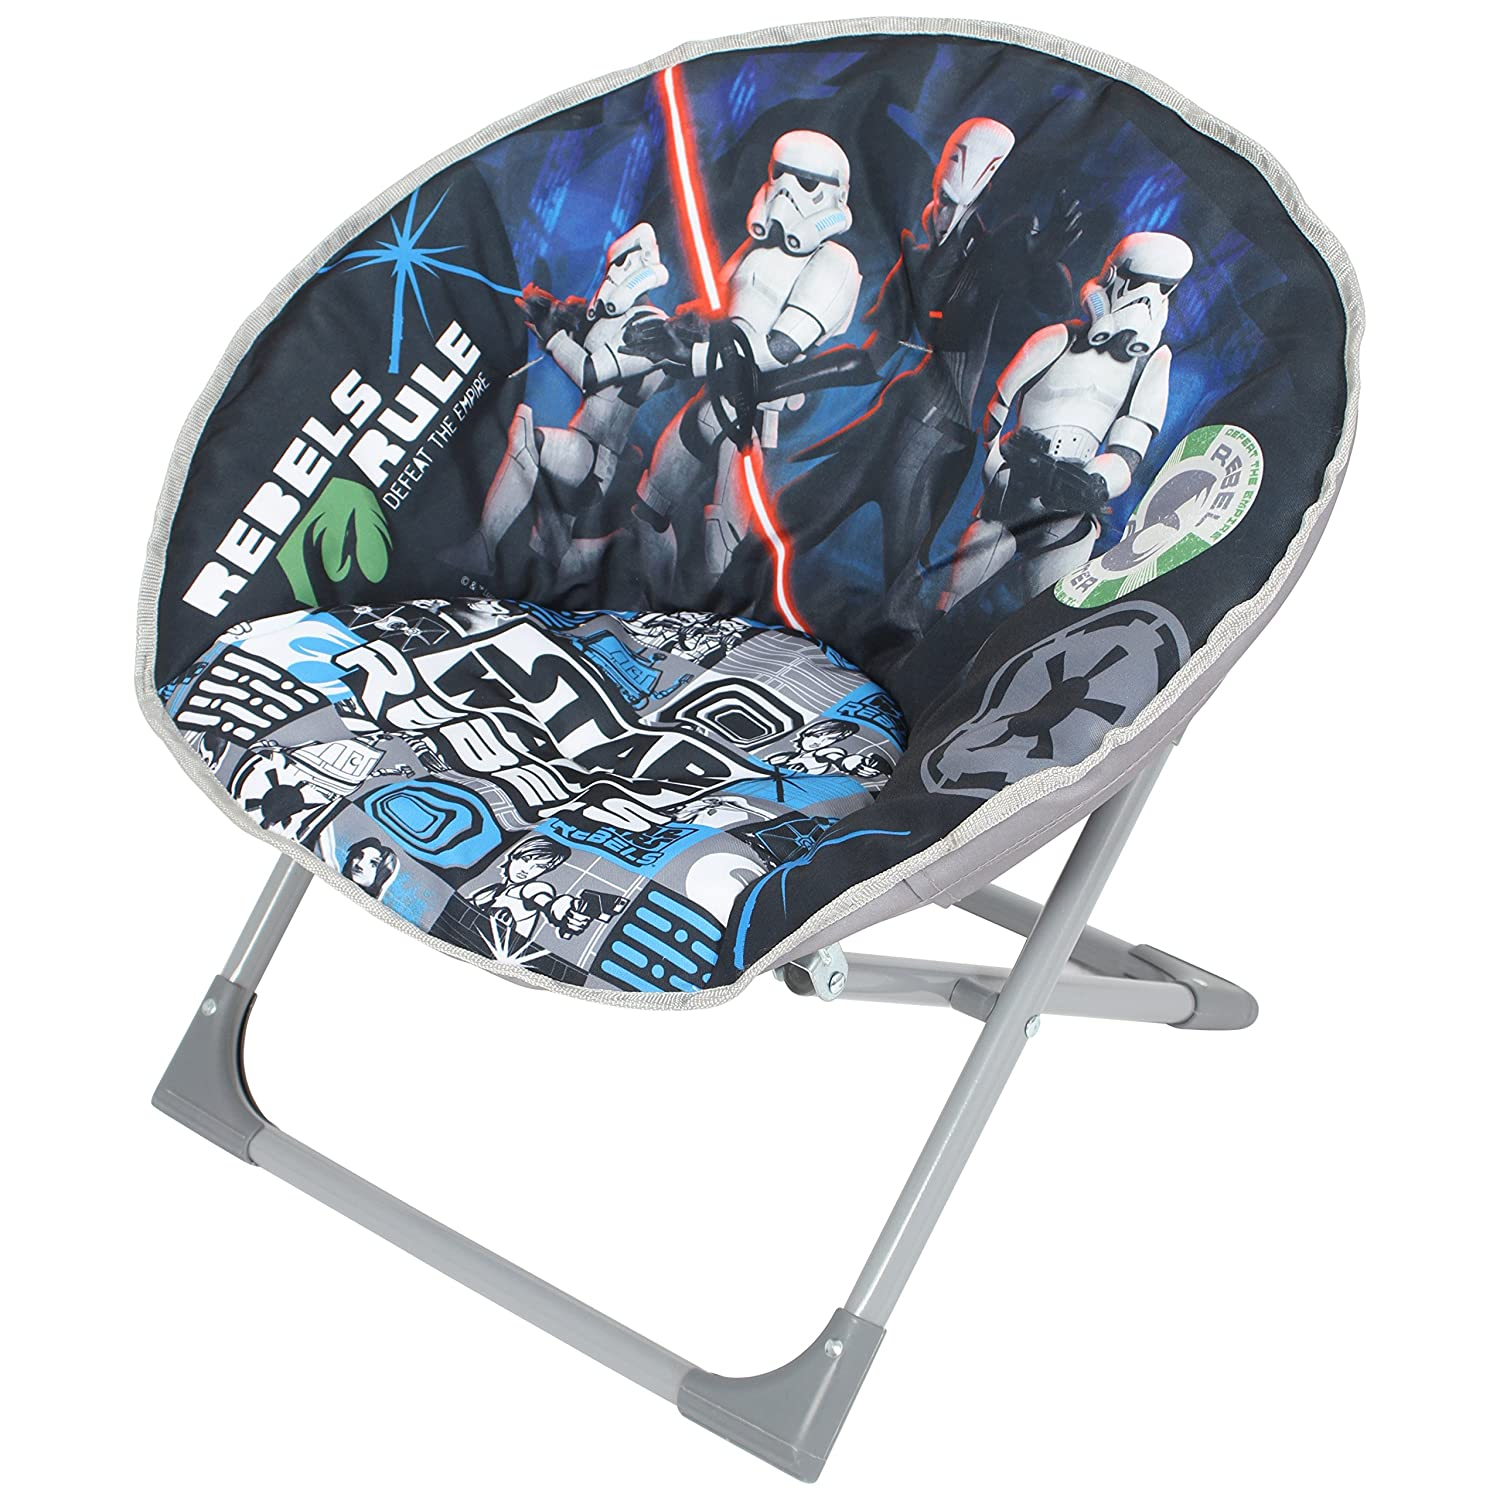 Disney Moon Chair Star Wars Fabric Grey Amazon Kitchen